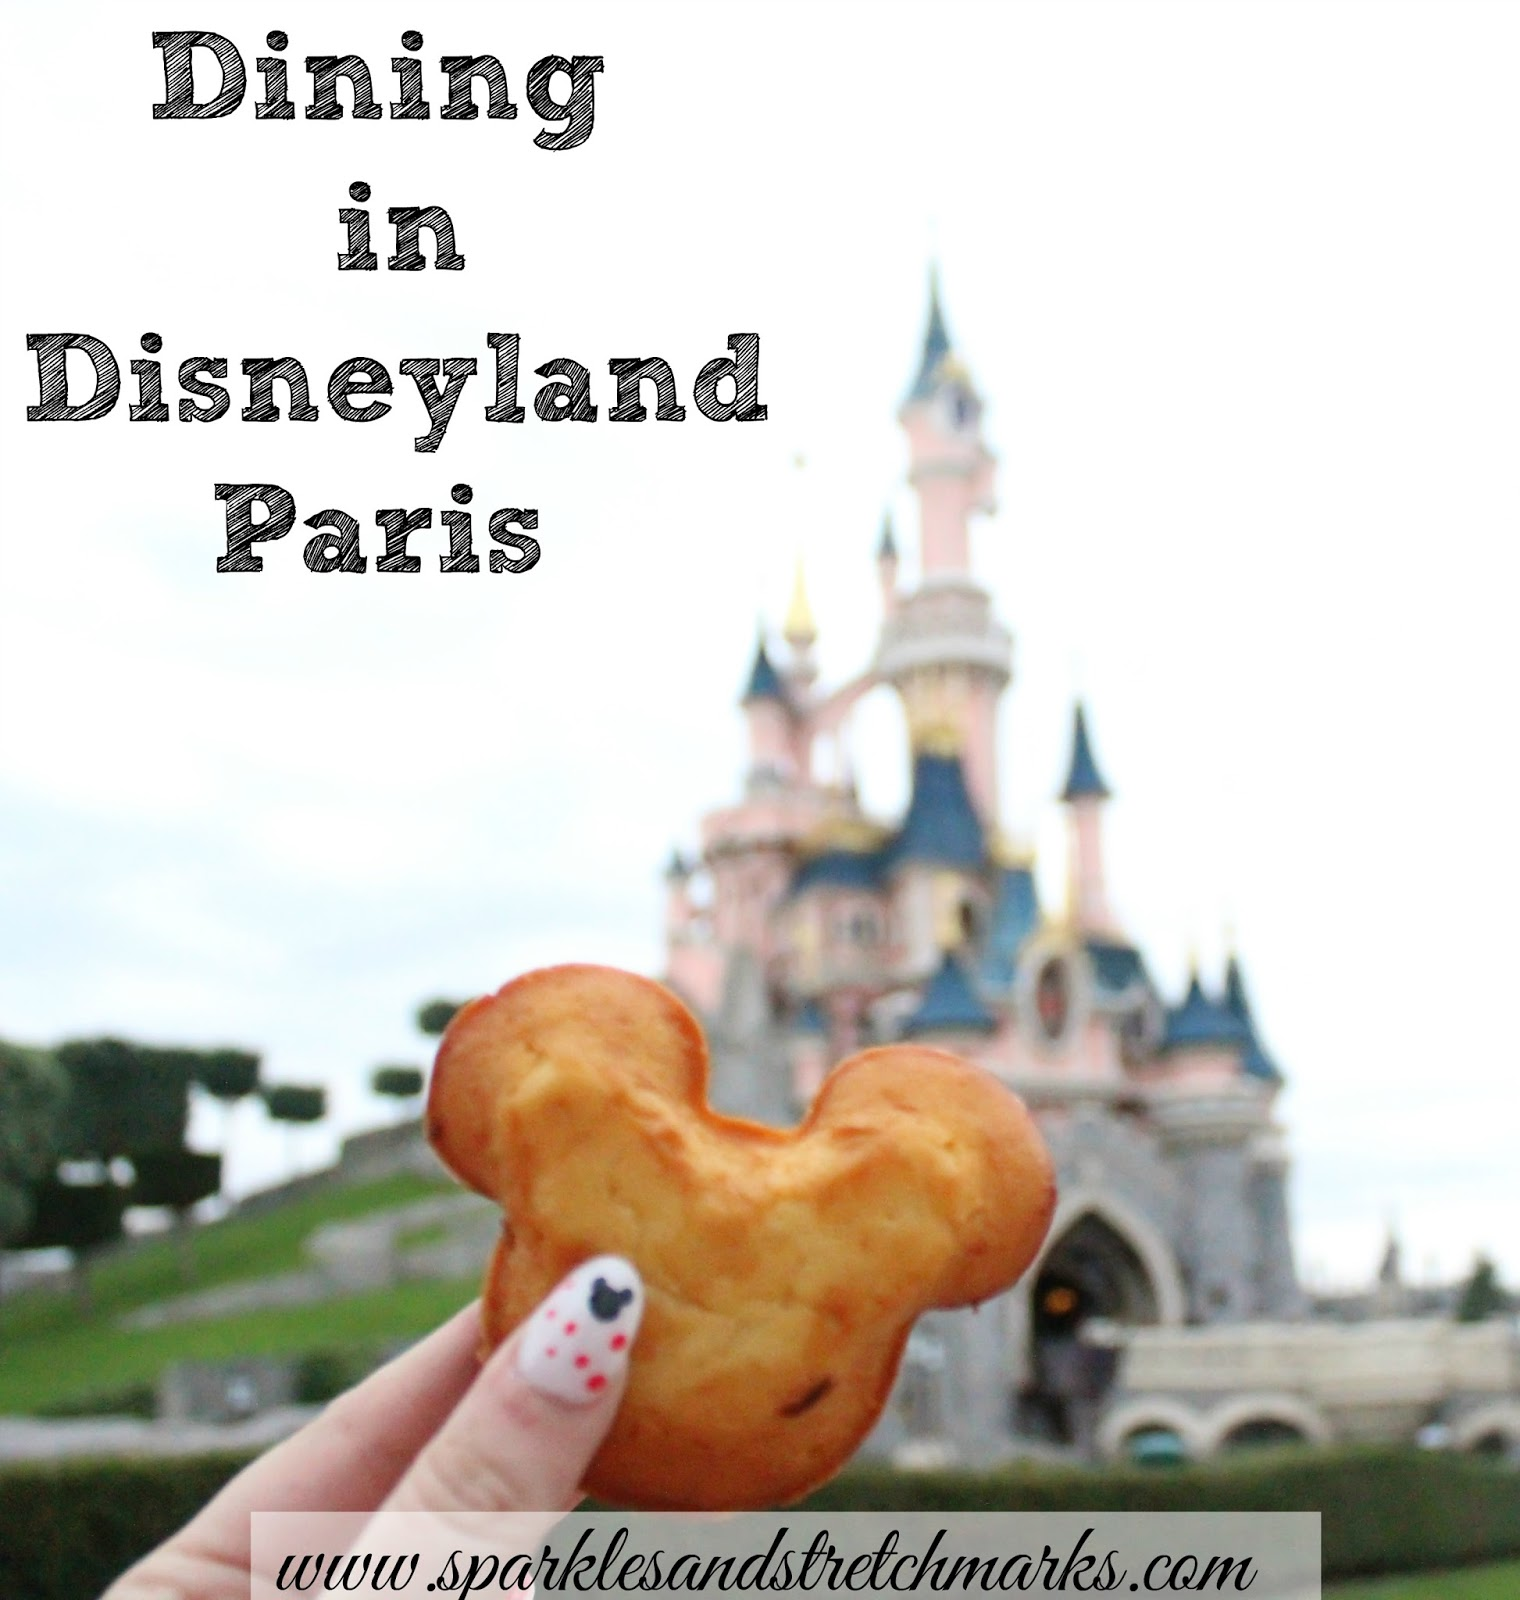 Dining In Disneyland Paris   Sparkles and Stretchmarks: UK Mummy ...